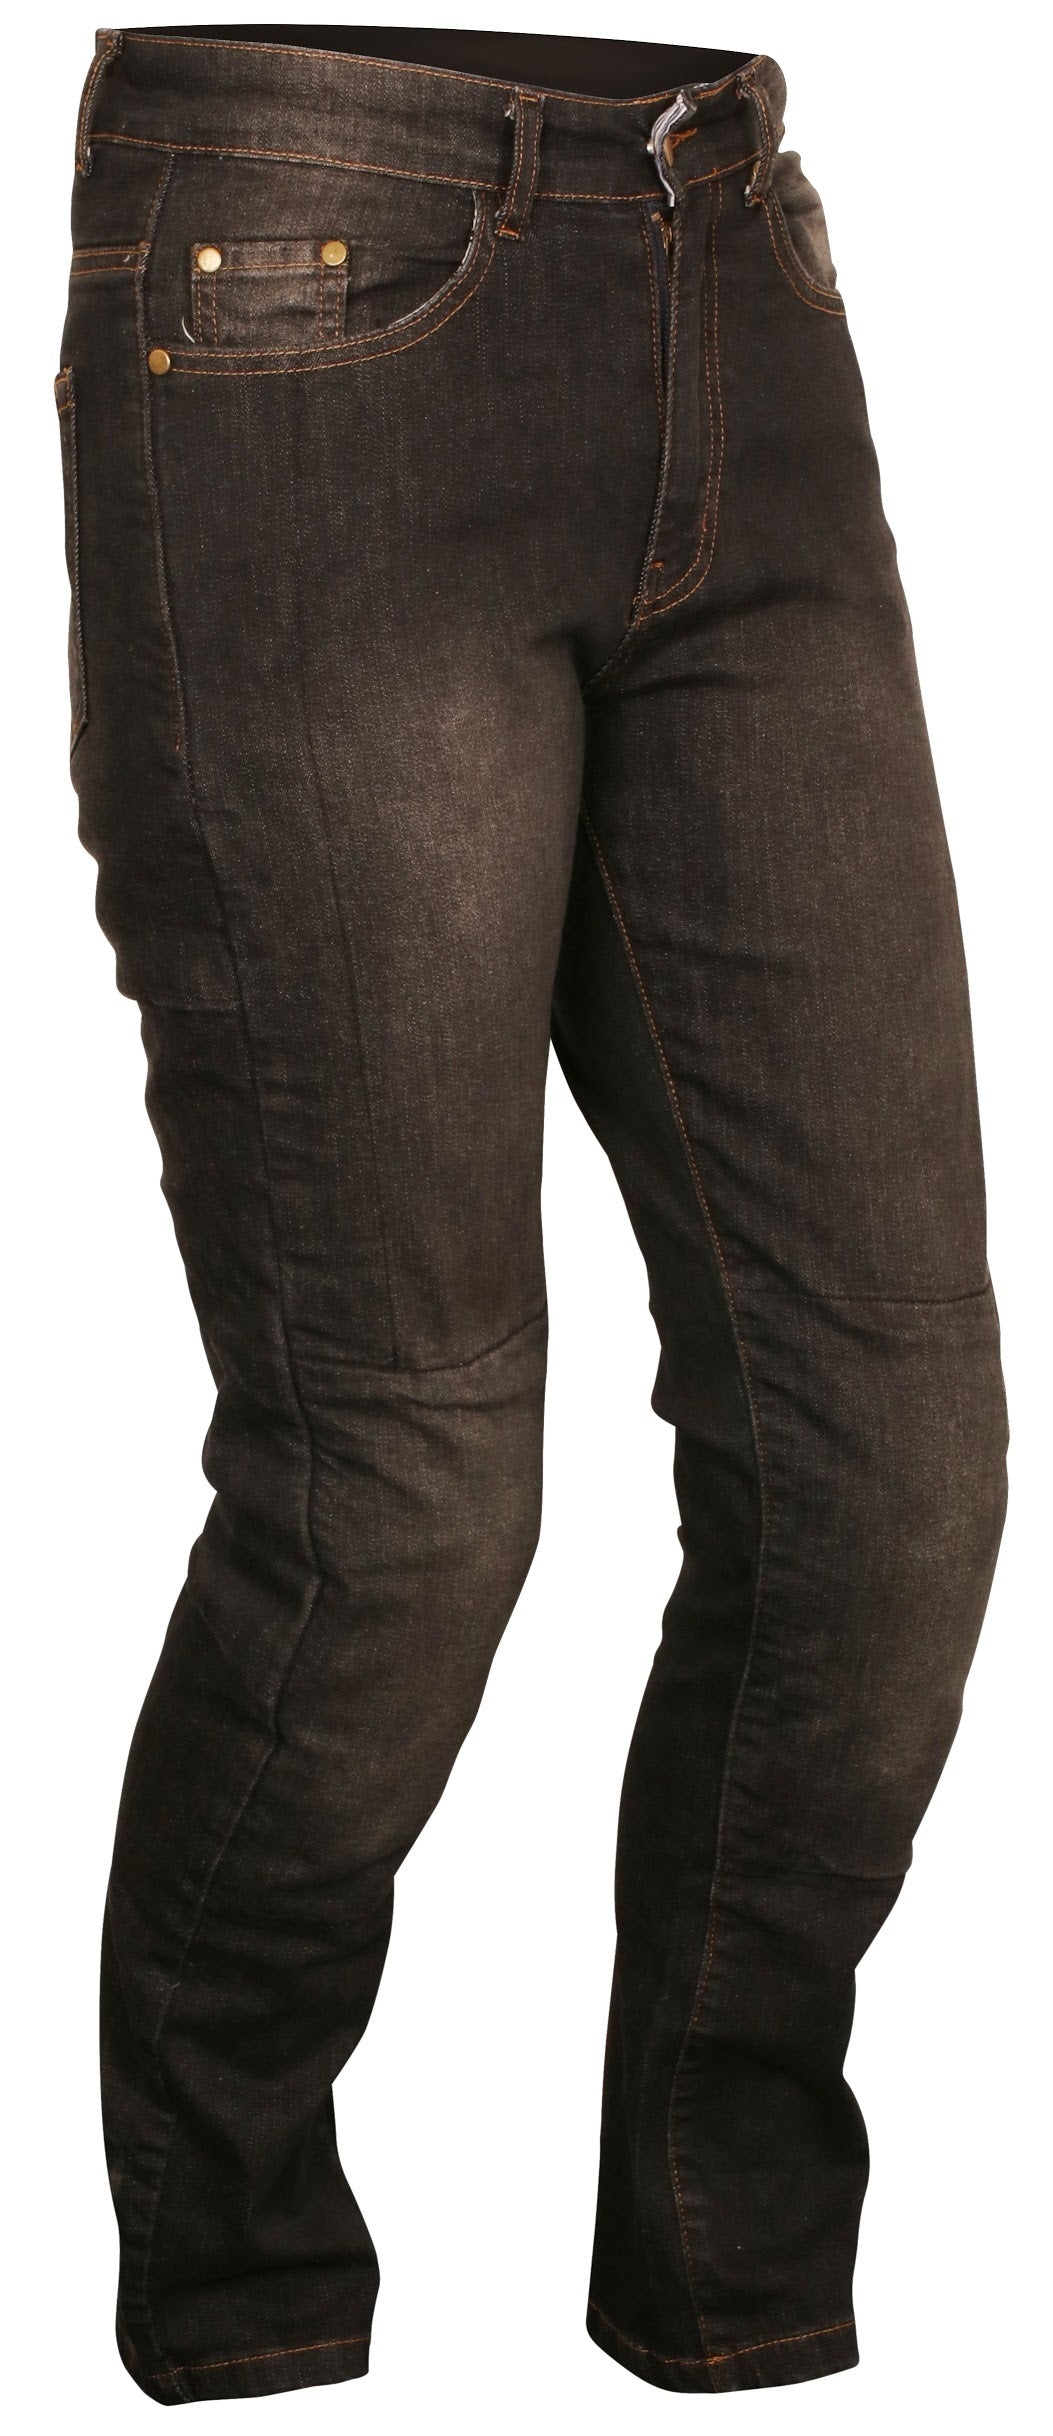 Weise Denim Jeans - Tundra, Denim Jeans, Weise - Averys Motorcycles